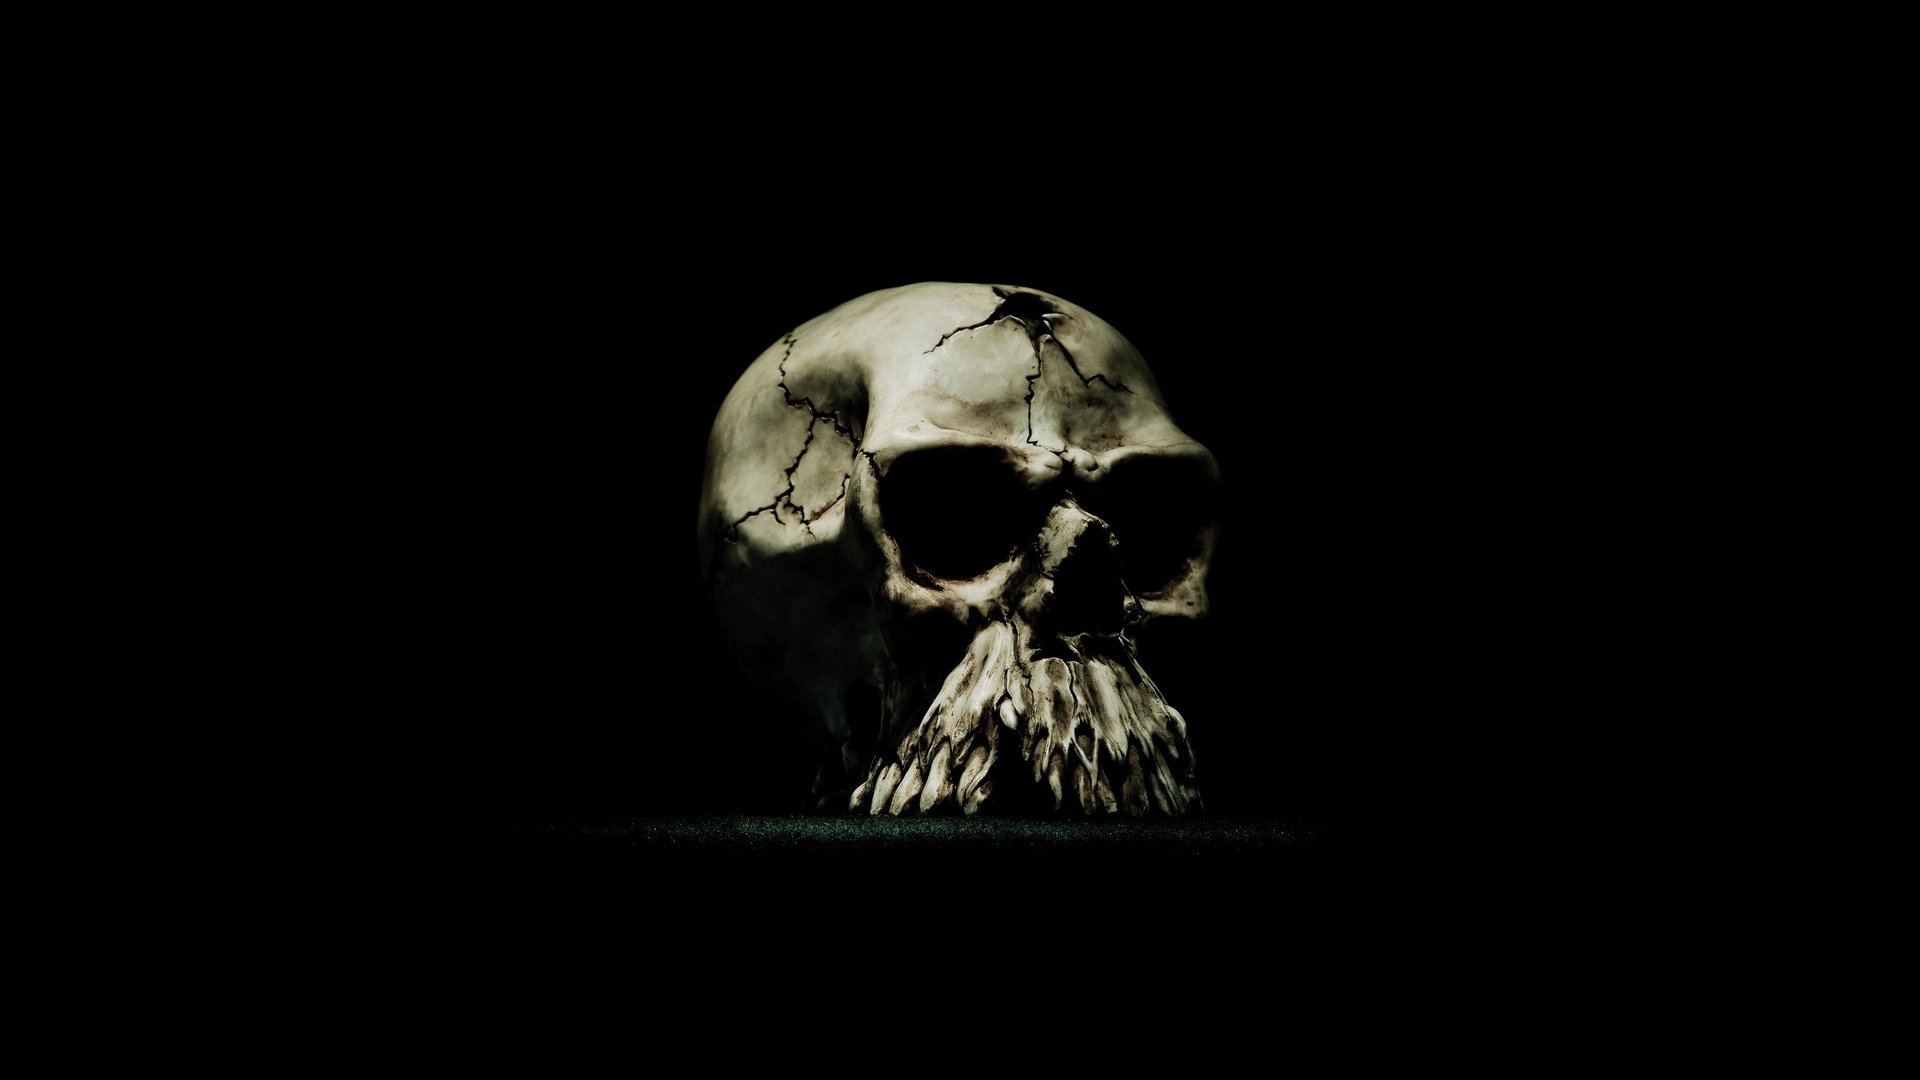 Scary Skull Wallpapers Scary Skull HD Wallpapers Scary 1920x1080